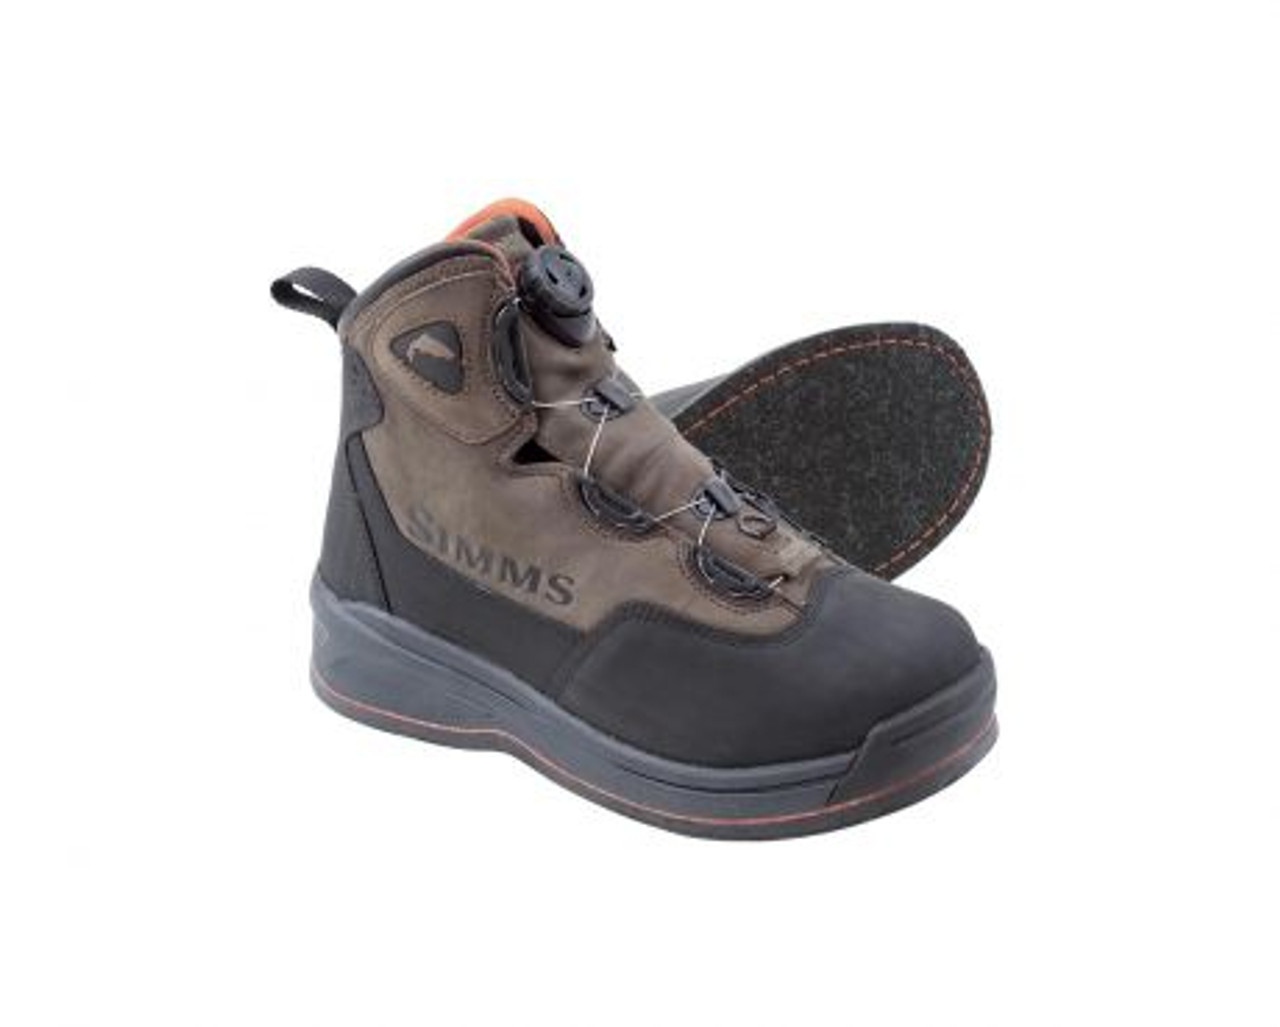 HEADWATERS BOA BOOT - FELT